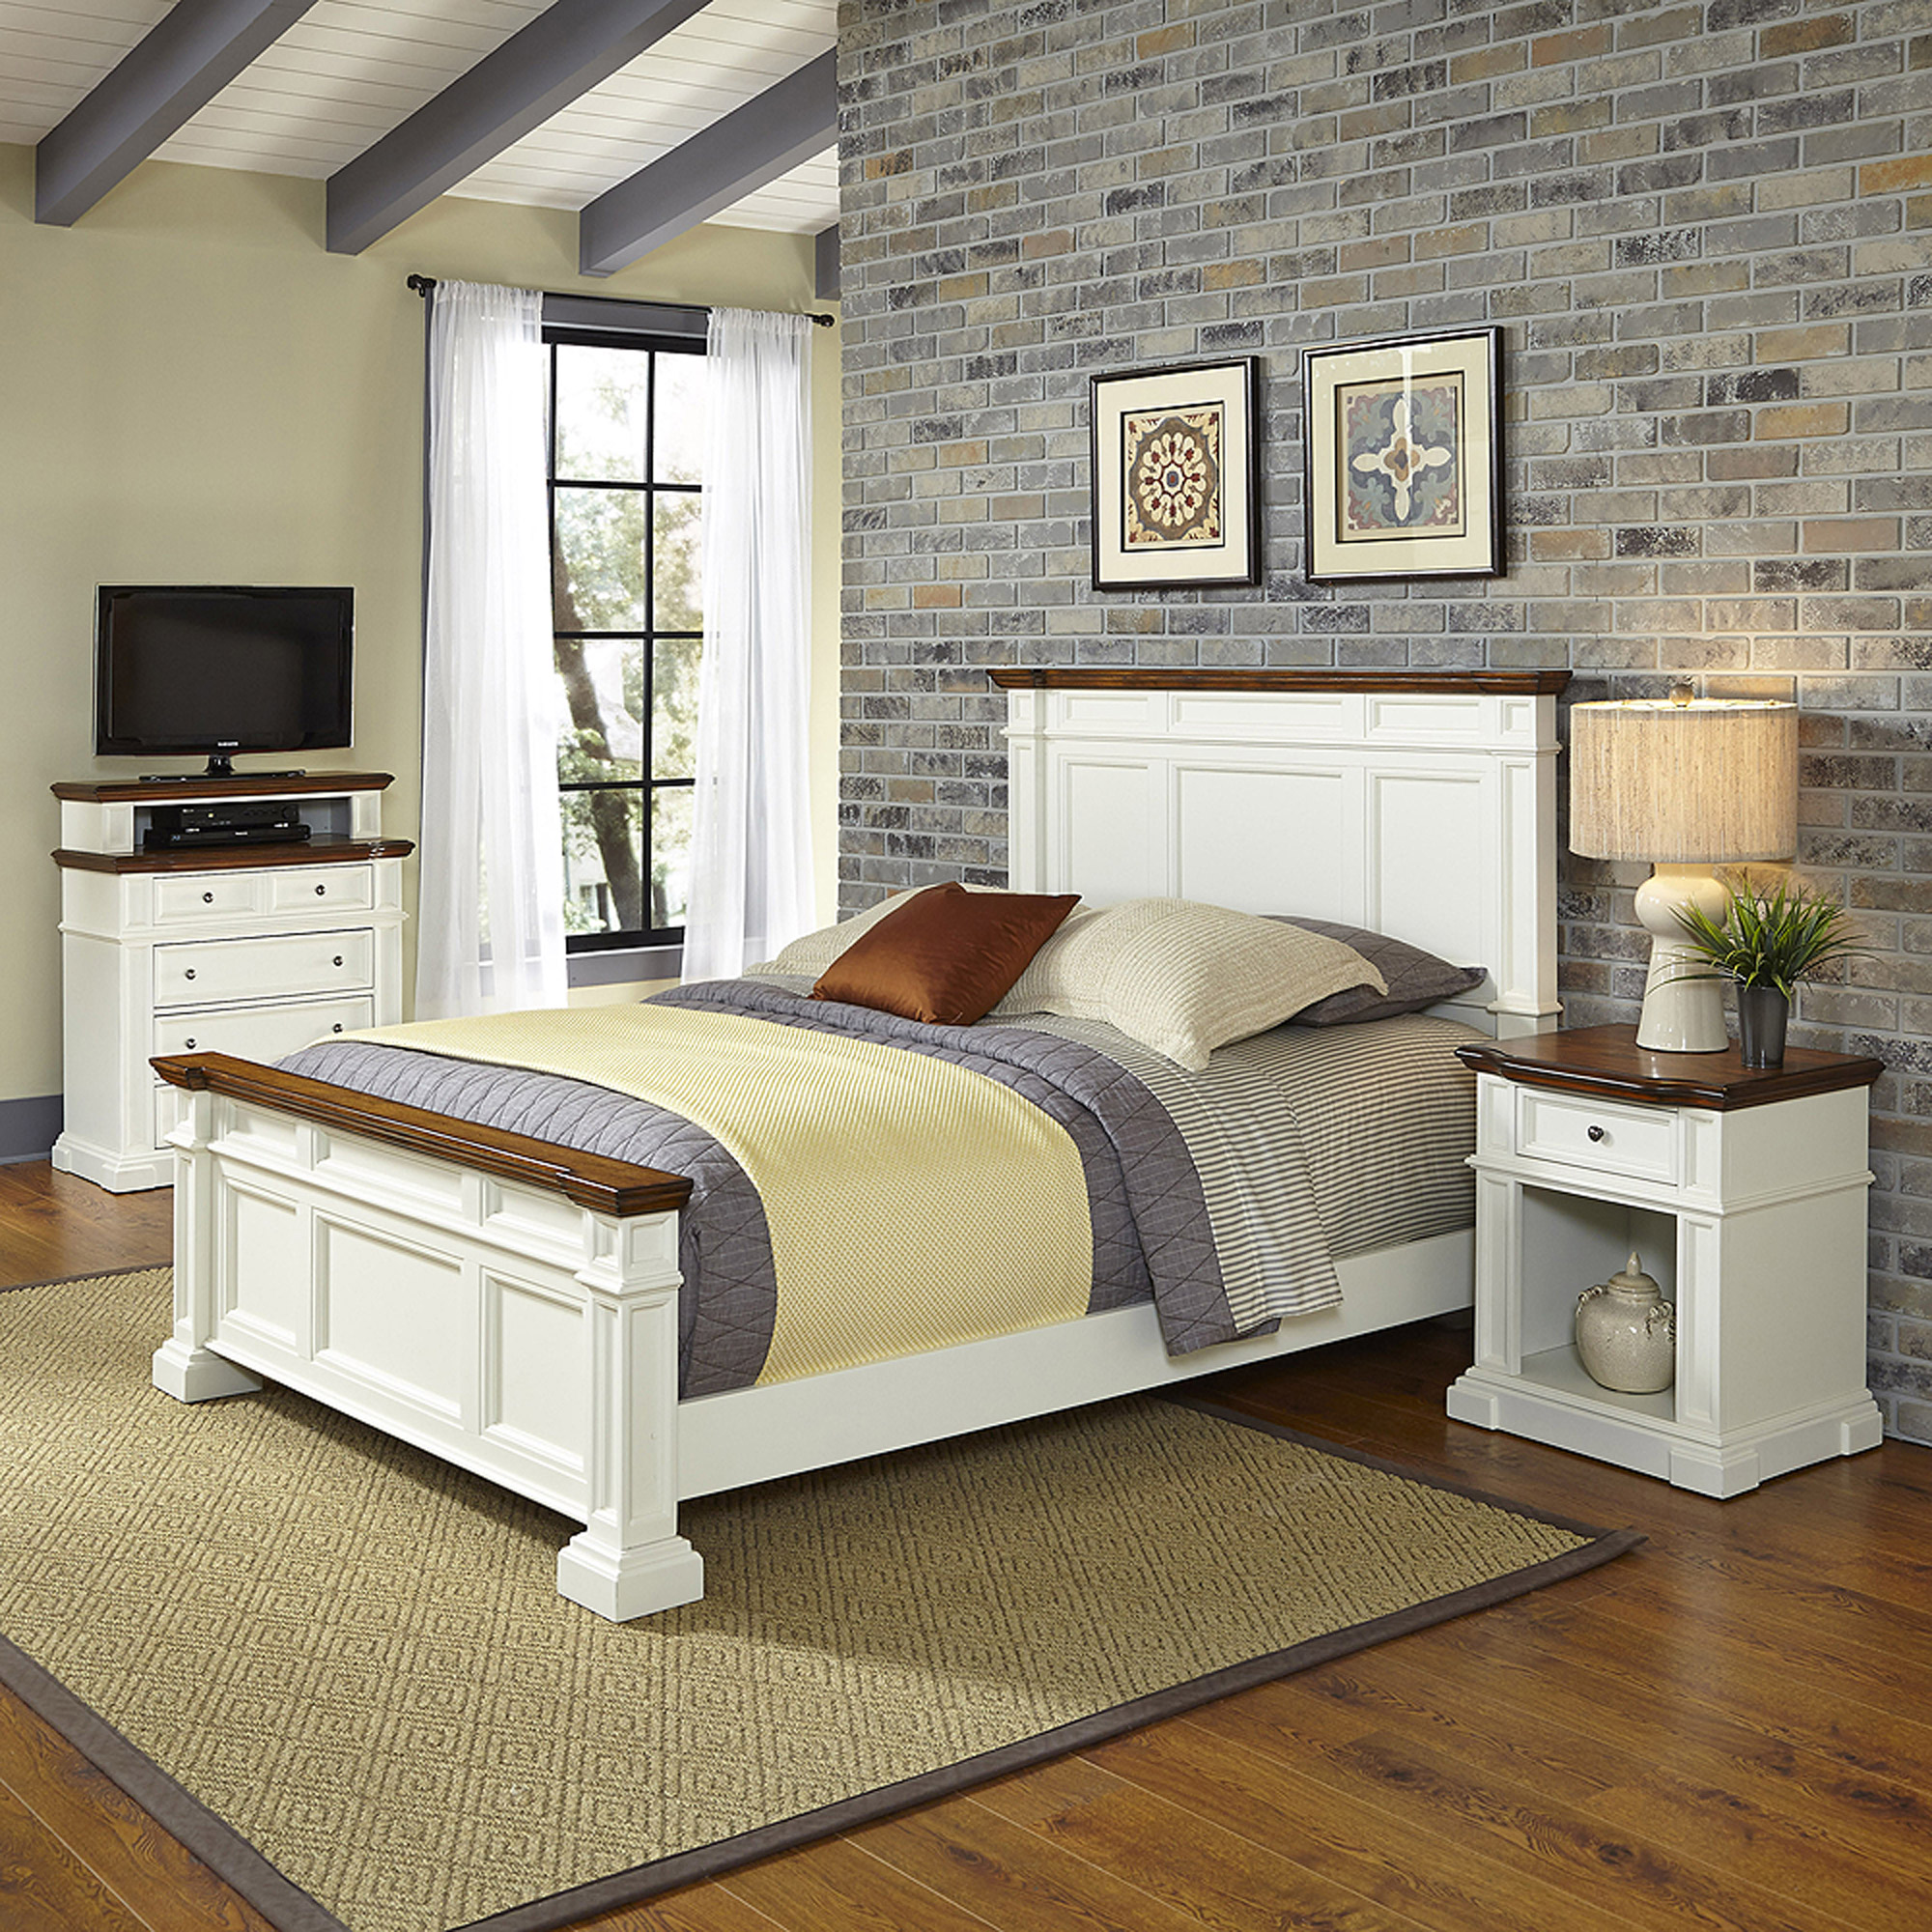 Home Styles Americana King Bed, Night Stand and Media Chest